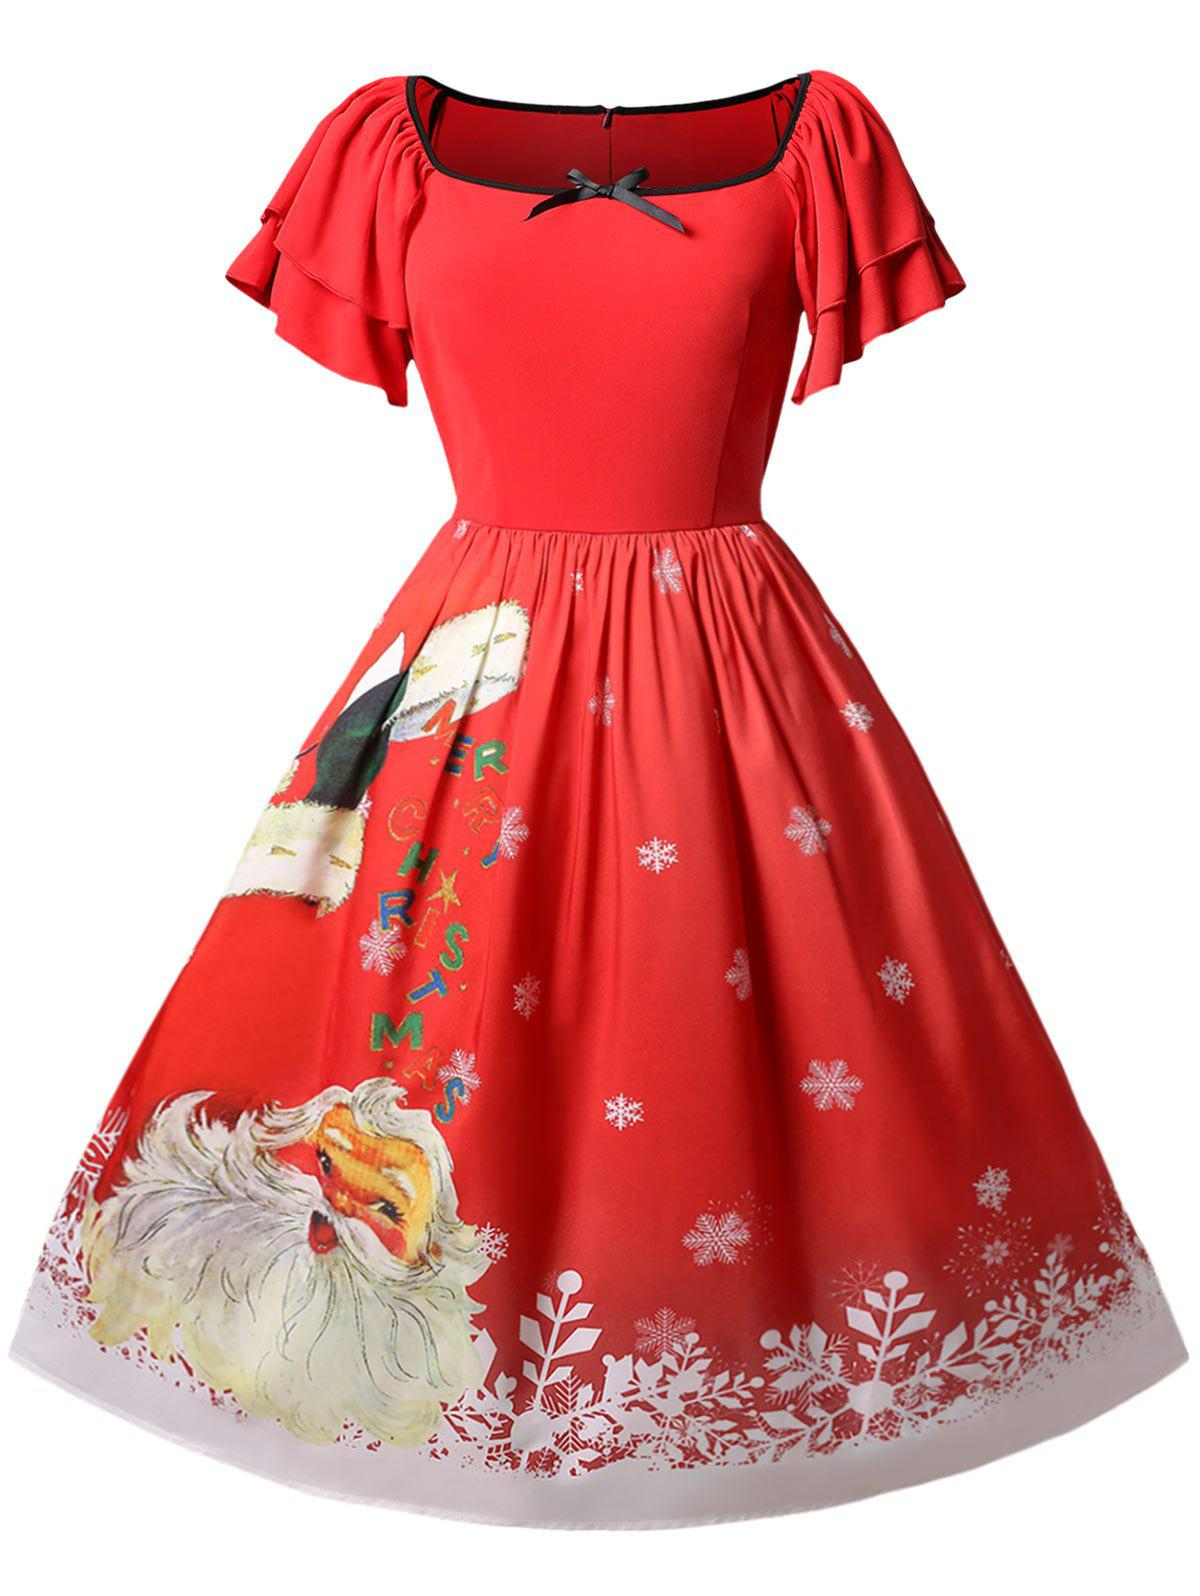 b59ac3598966 41% OFF] Christmas Plus Size Santa Claus Print Vintage Dress | Rosegal